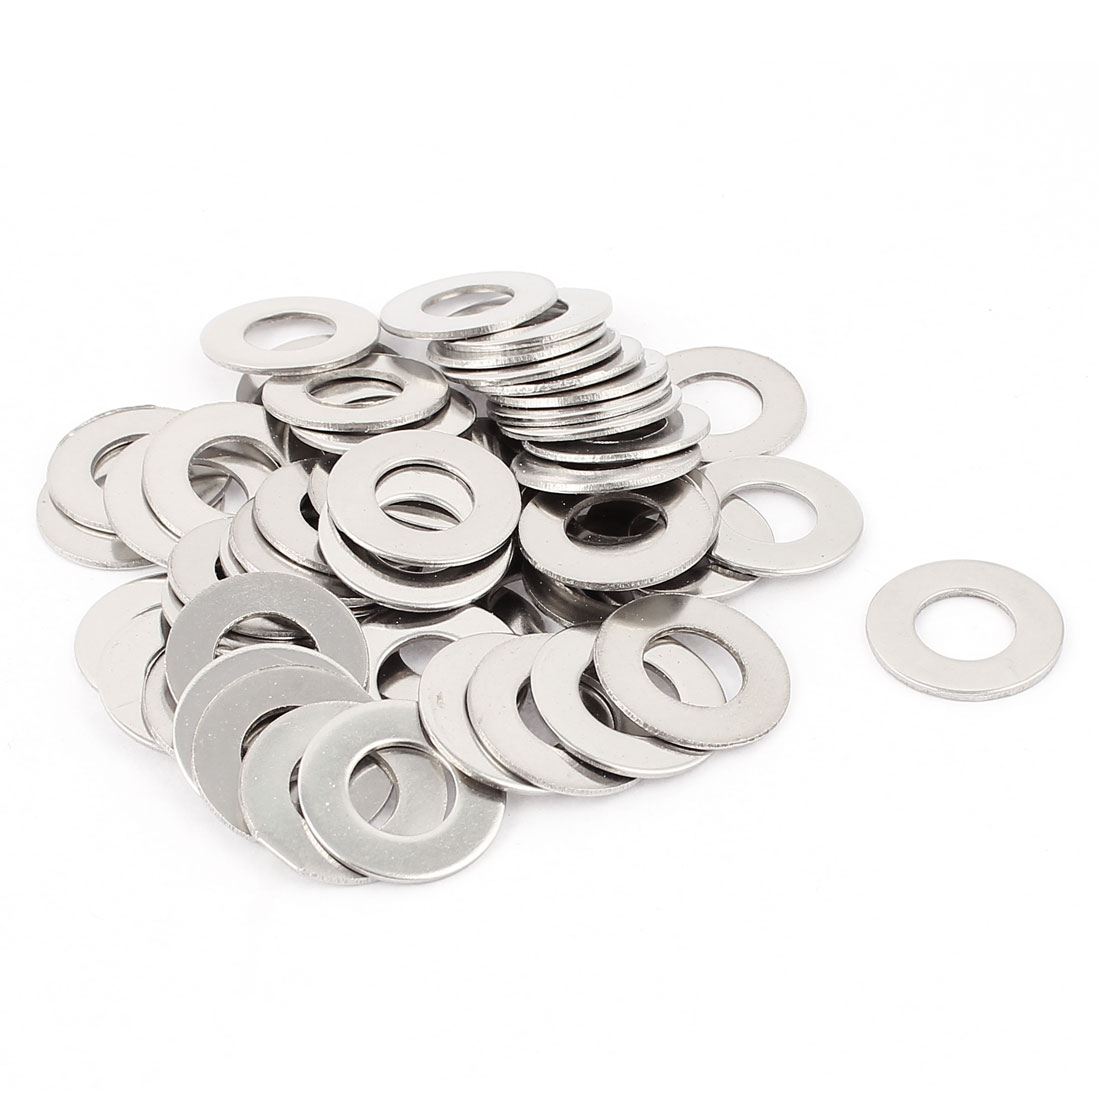 Screw Bolt 304 Stainless Steel M10 Flat Spacer Washer Gasket 50pcs